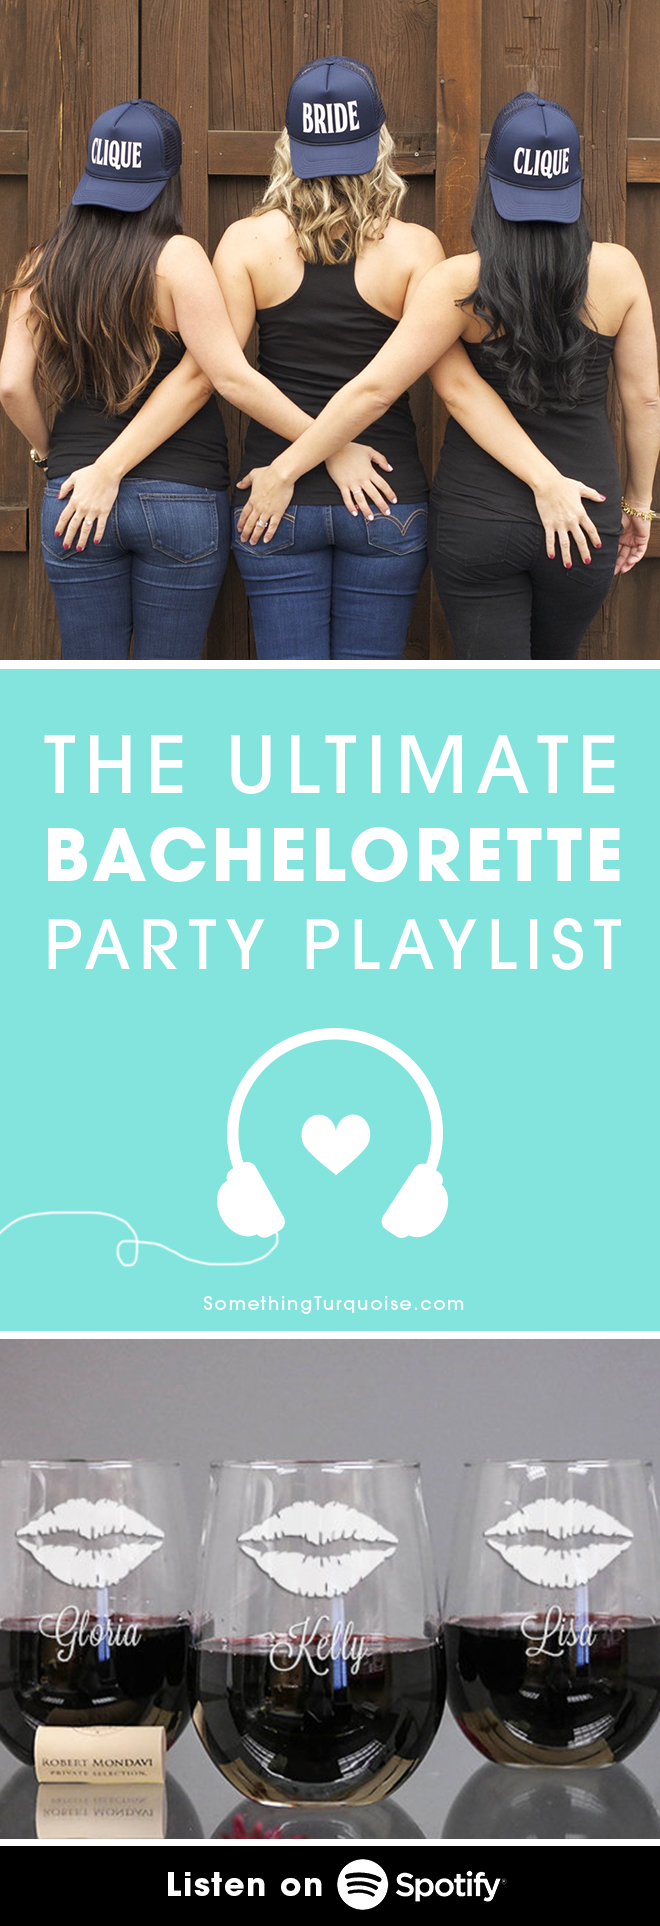 Spotify-Playlist-Bachelorette-Party